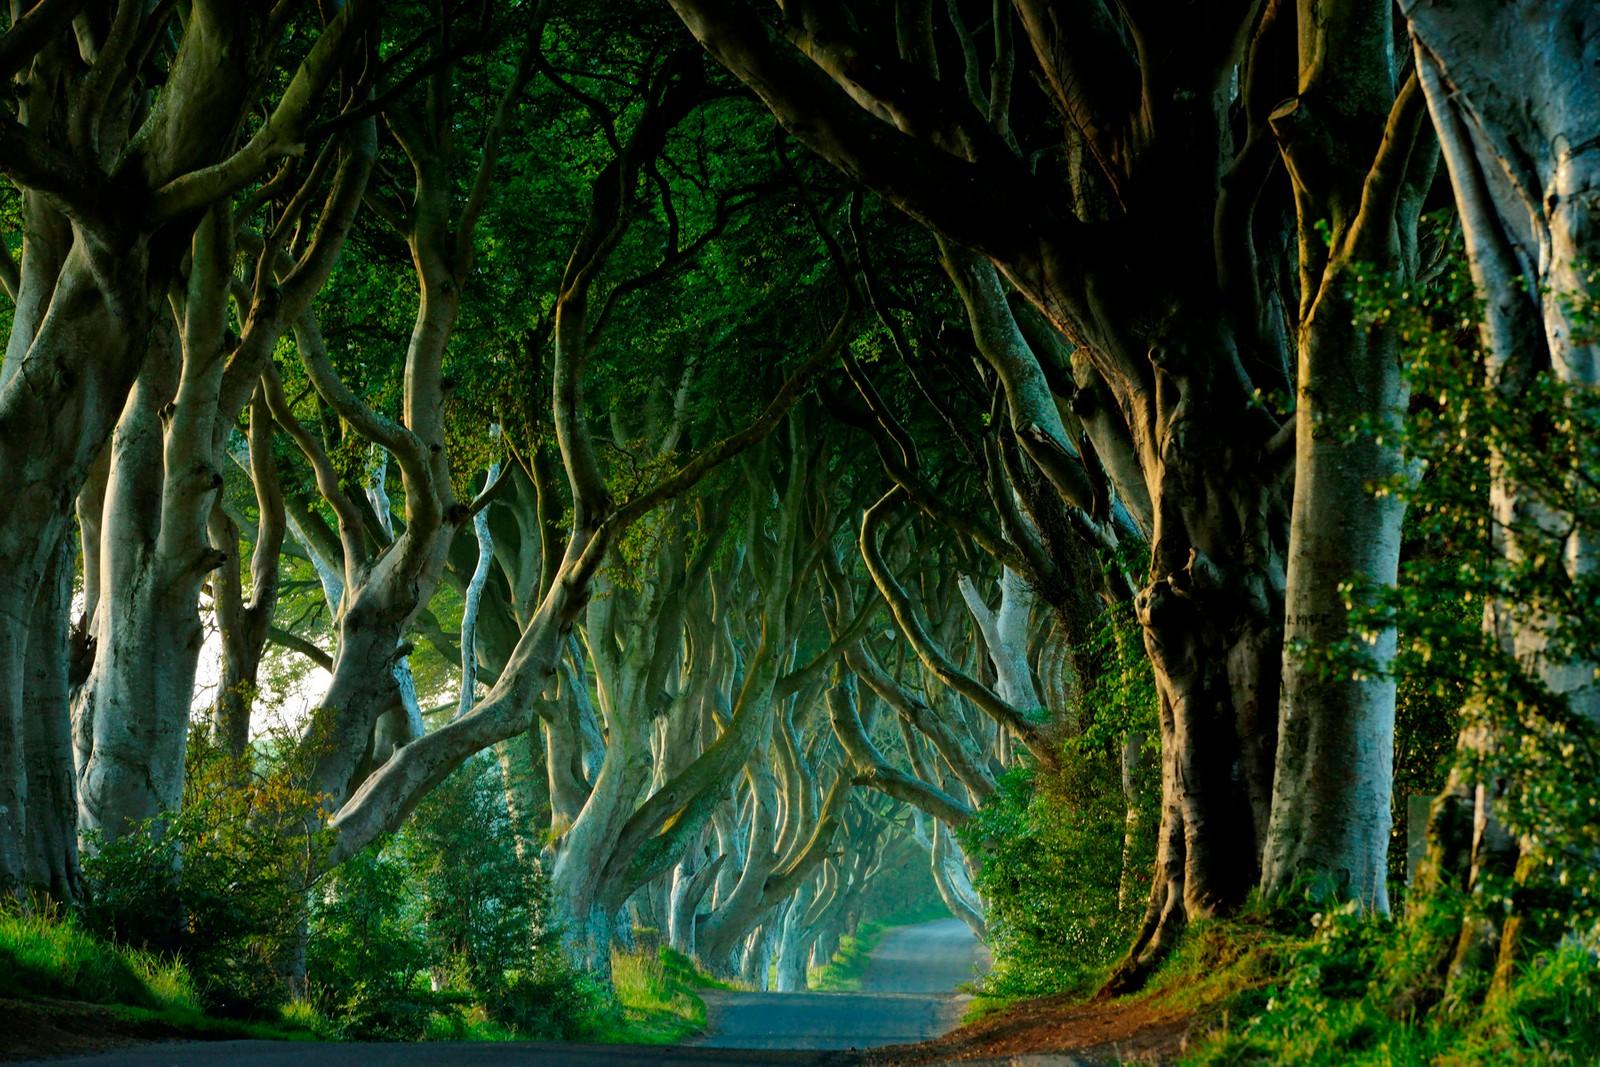 Five 'Game of Thrones' Locations to Visit If You Can't Let Go hbo jon snow rob stark bran stark uk England Scotland Northern Ireland united kingdom daenerys targaryen tyrion lannister missandei